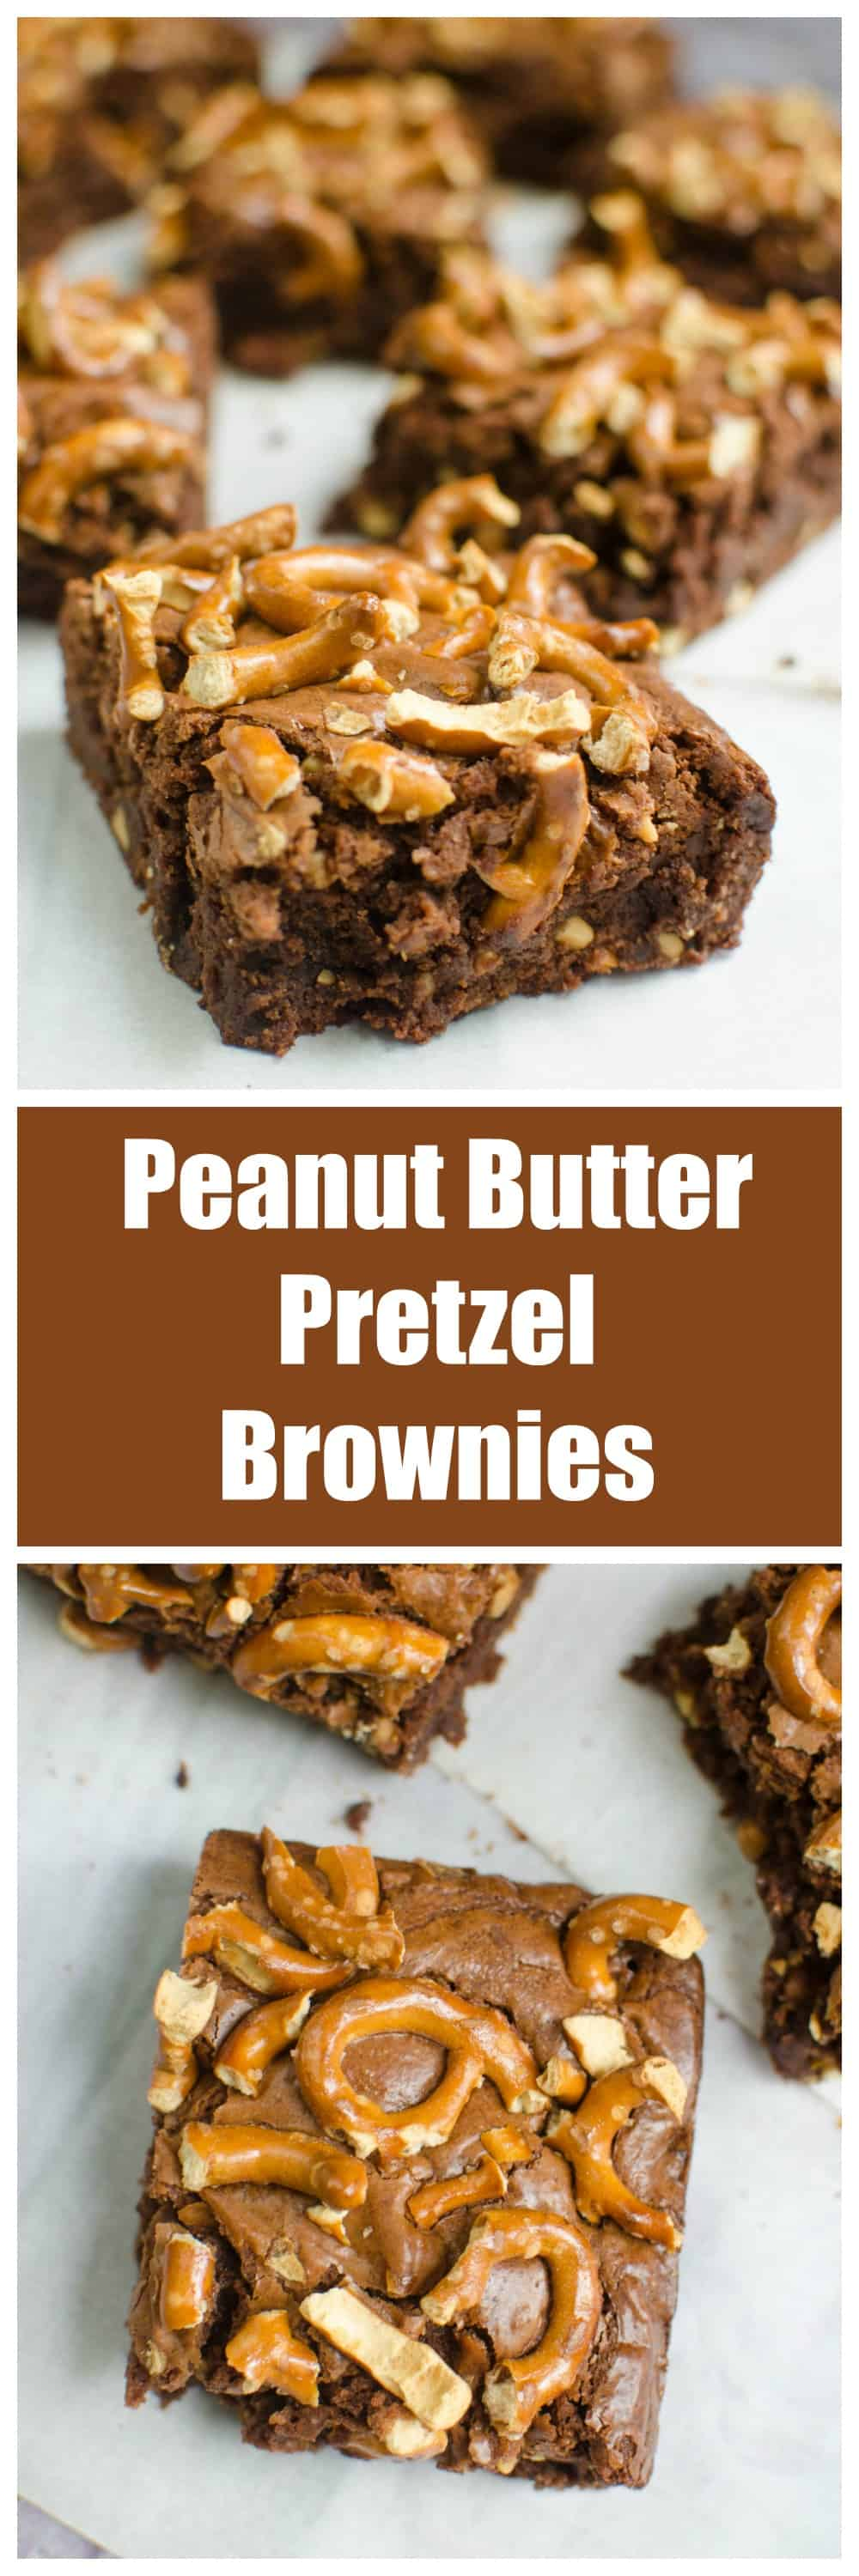 Peanut Butter Pretzel Brownies - chewy brownies filled with peanut butter and topped with pretzels. The perfect sweet and salty treat!